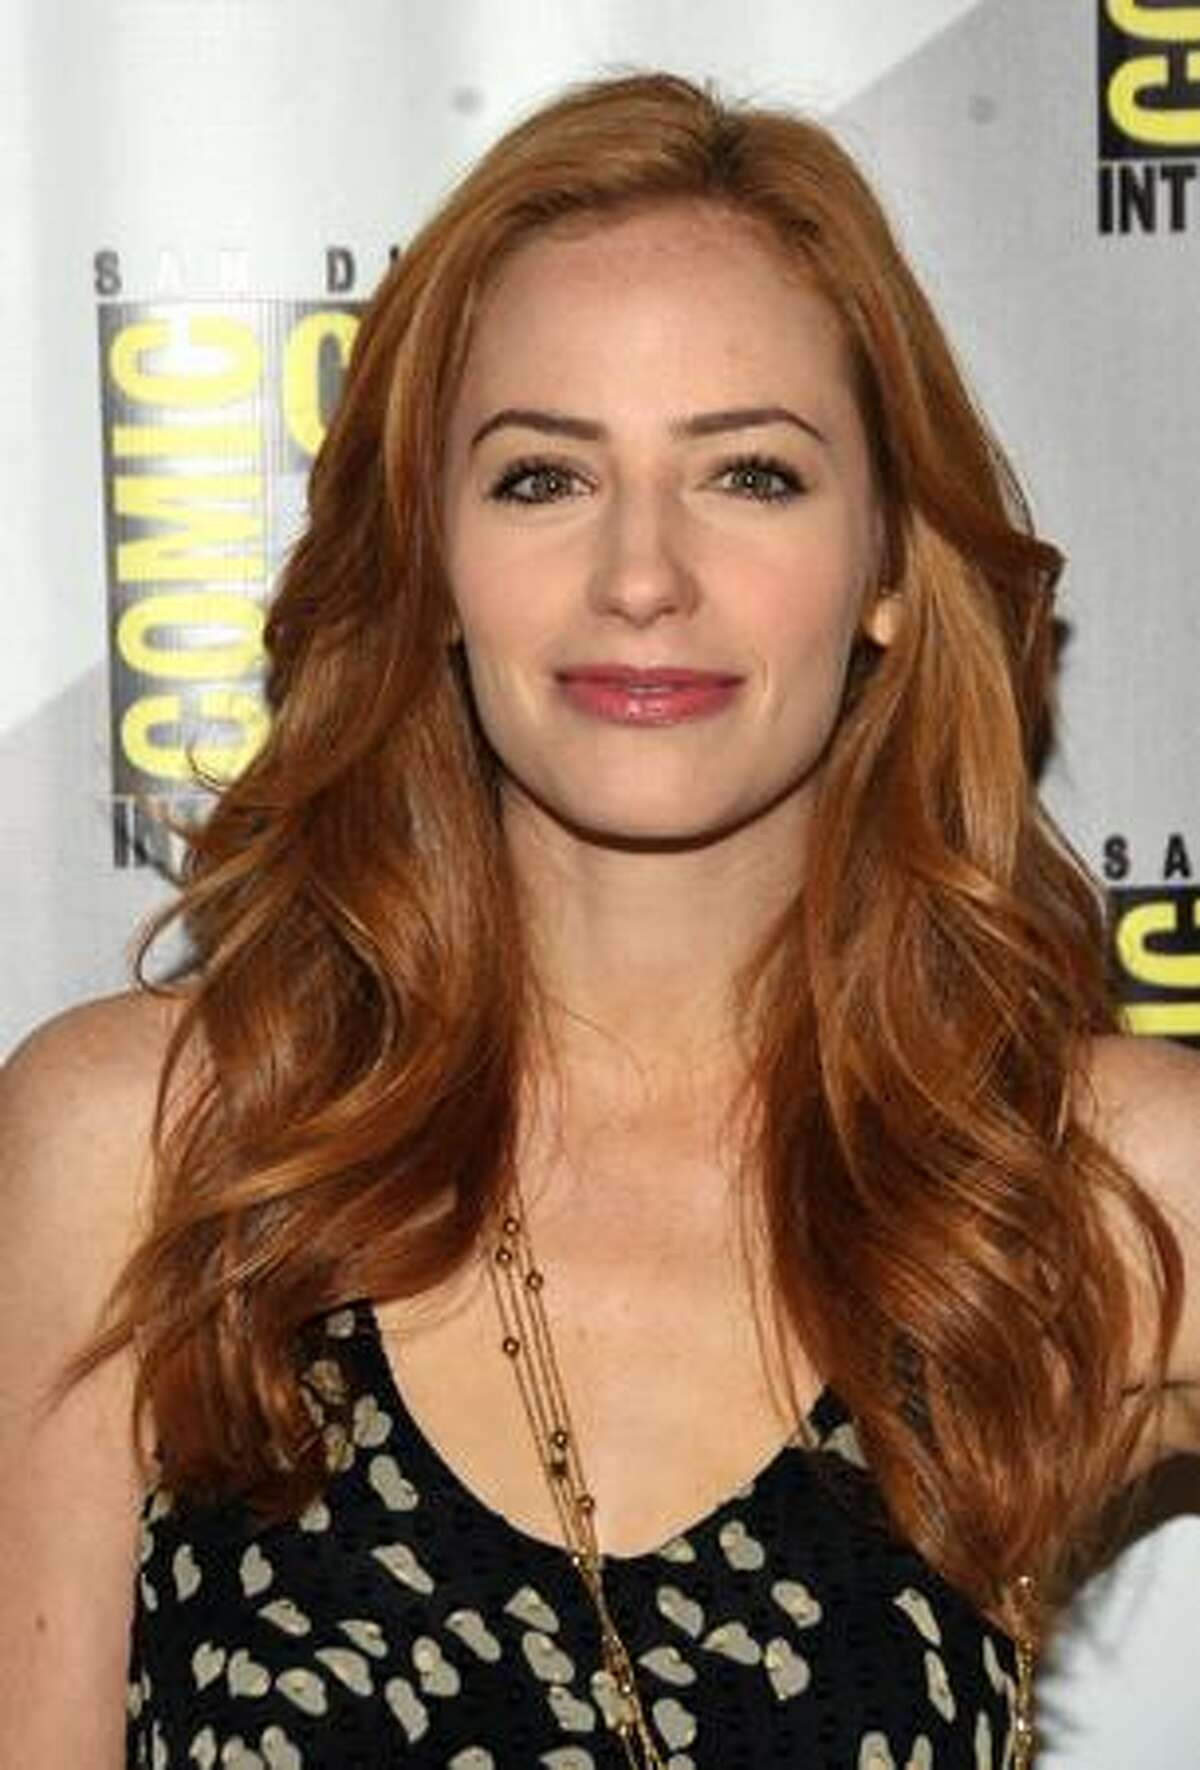 """SAN DIEGO - JULY 25: Actress Jaime Ray Newman attends the """"Eastwick""""pilot screening at Comic-Con 2009 held at San Diego Convention Center on July 25, 2009 in San Diego, California."""